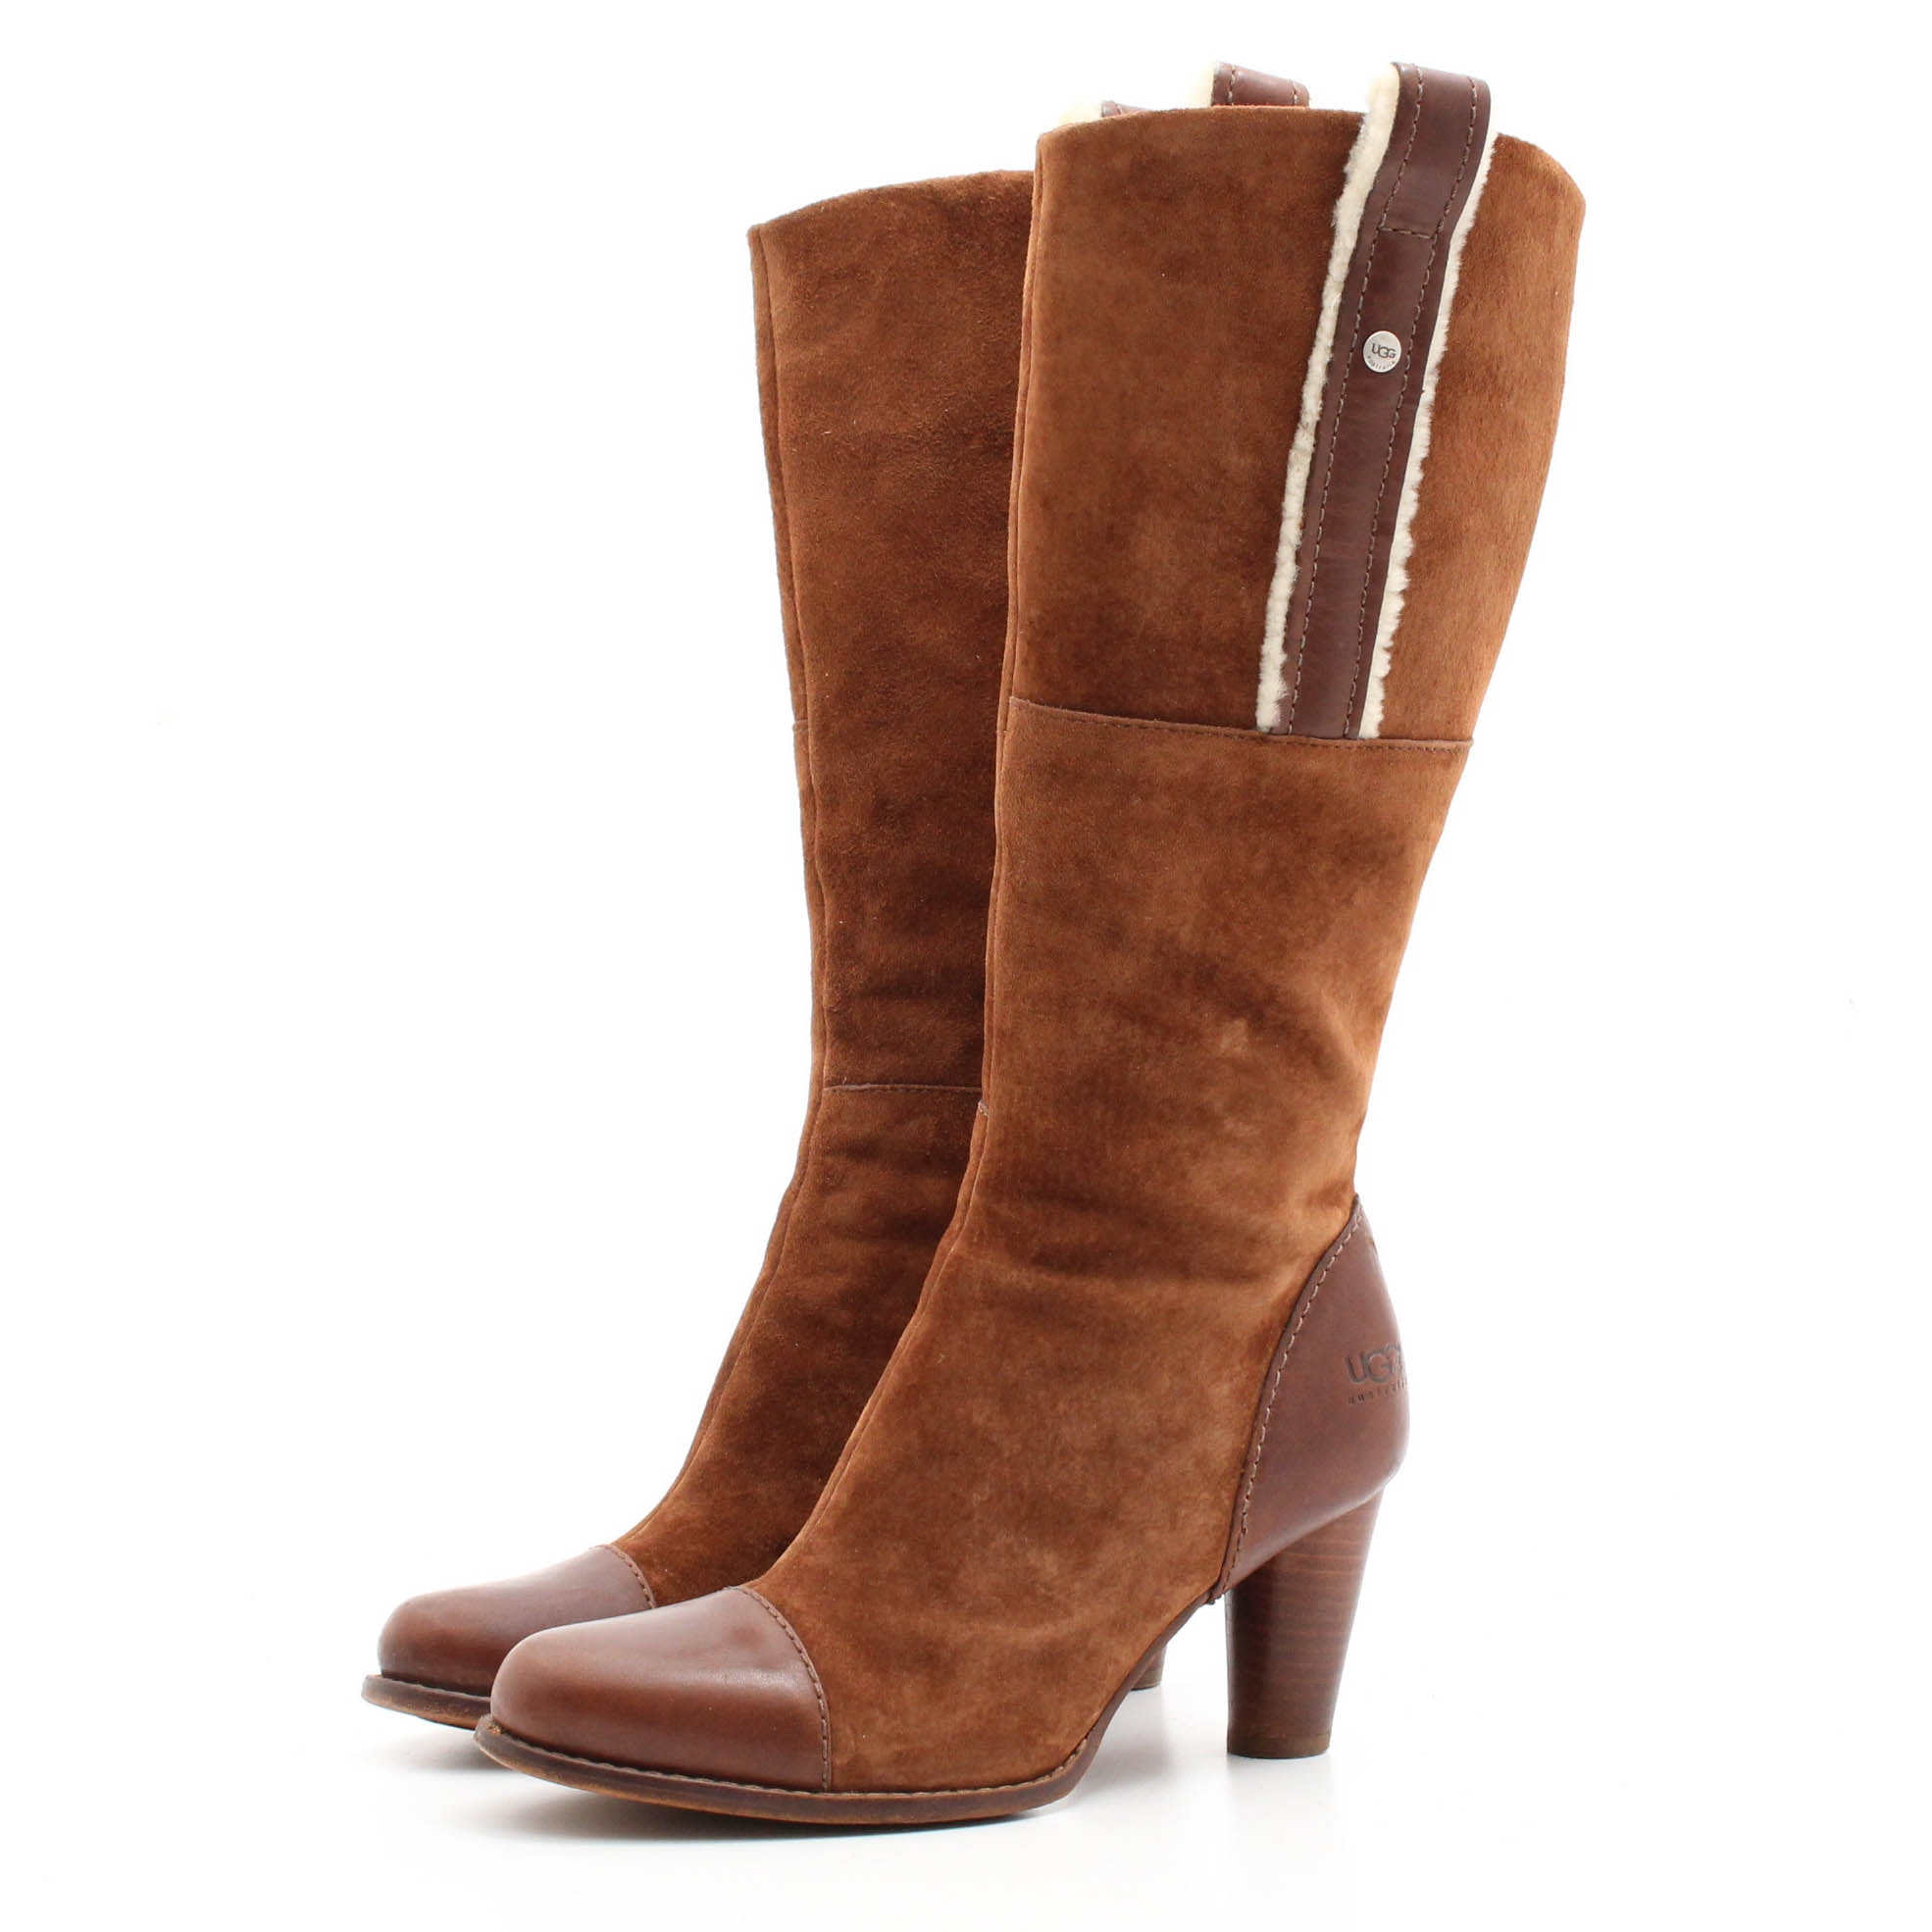 UGG Australia Brown Suede and Shearling Tall Boots